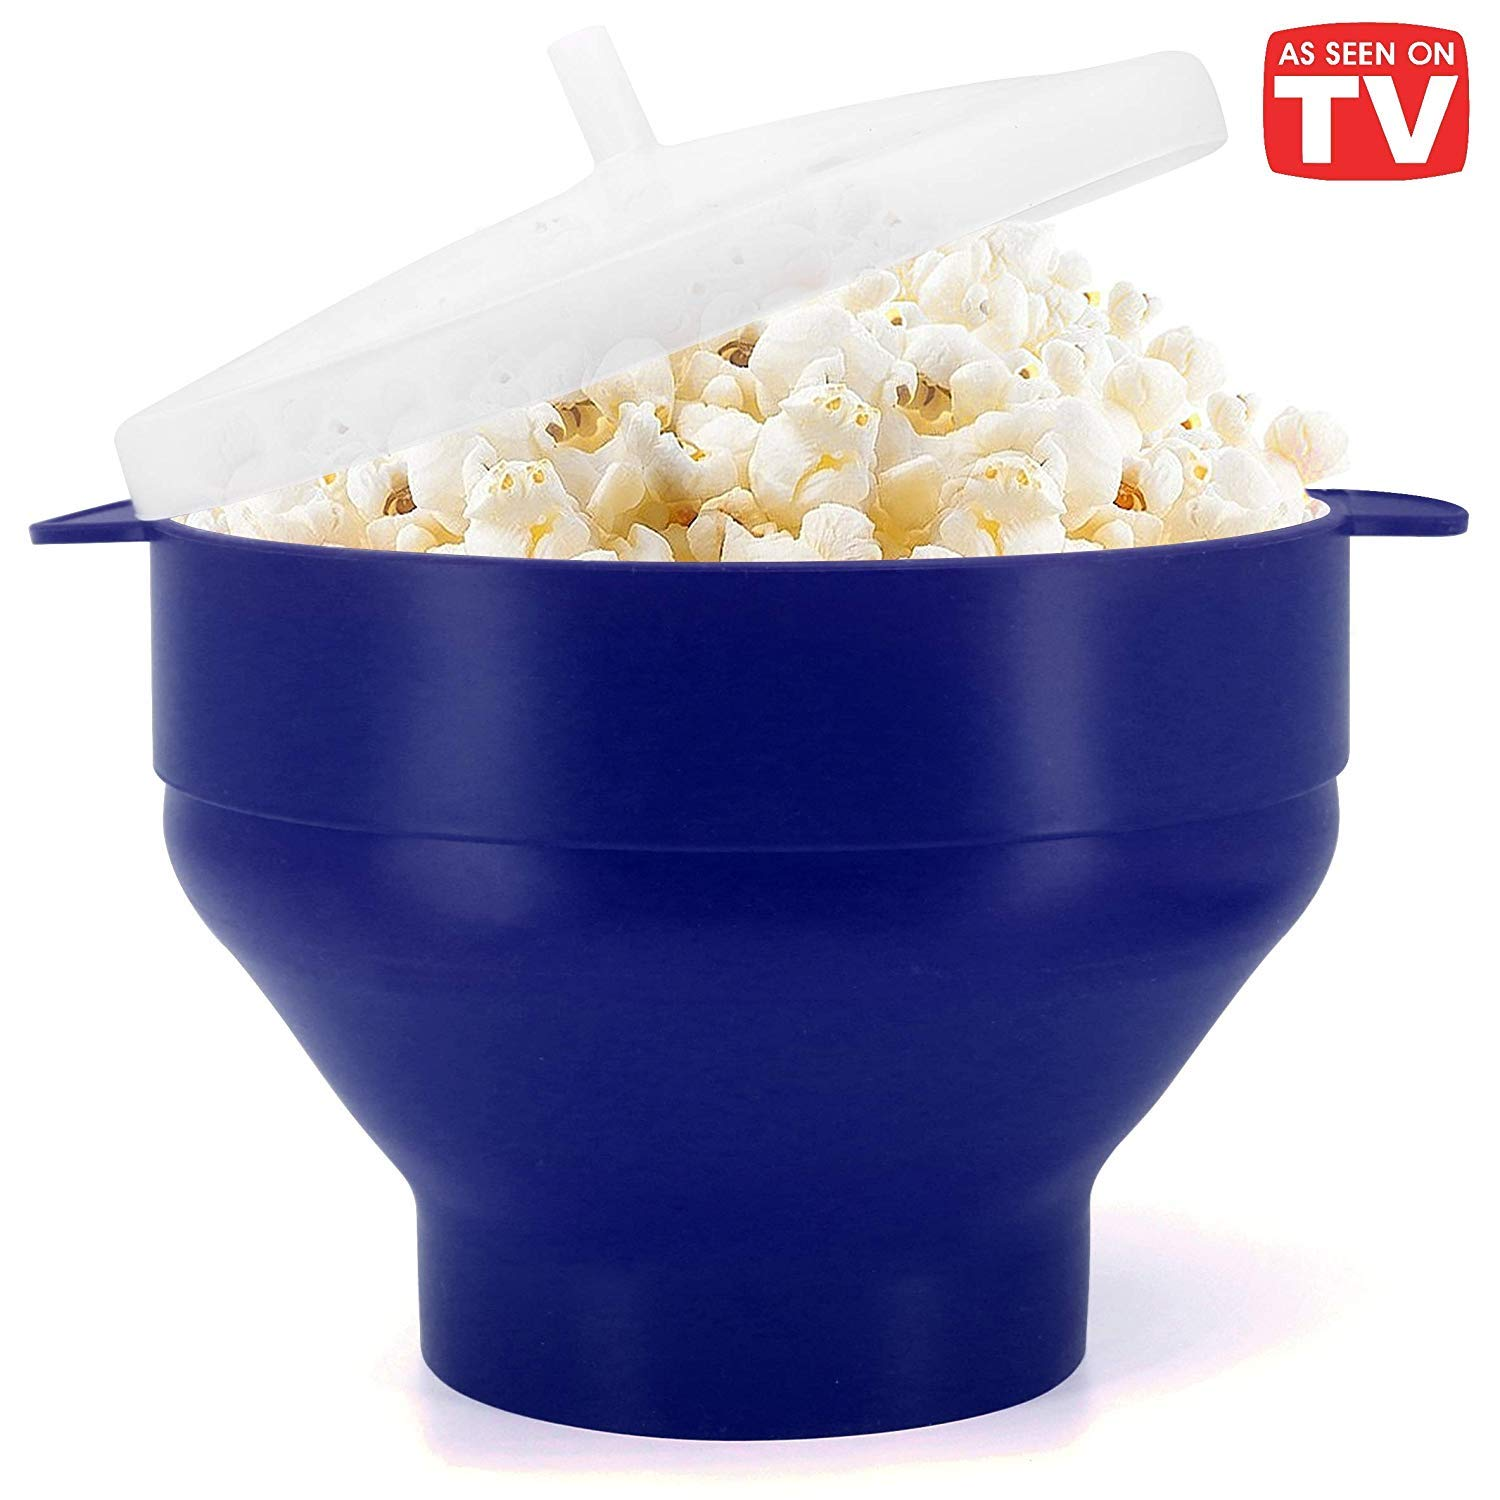 Microwaveable Silicone Popcorn Popper, BPA Free Collapsible Hot Air Microwavable Popcorn Maker Bowl, Use In Microwave or Oven (Blue) by KORCC